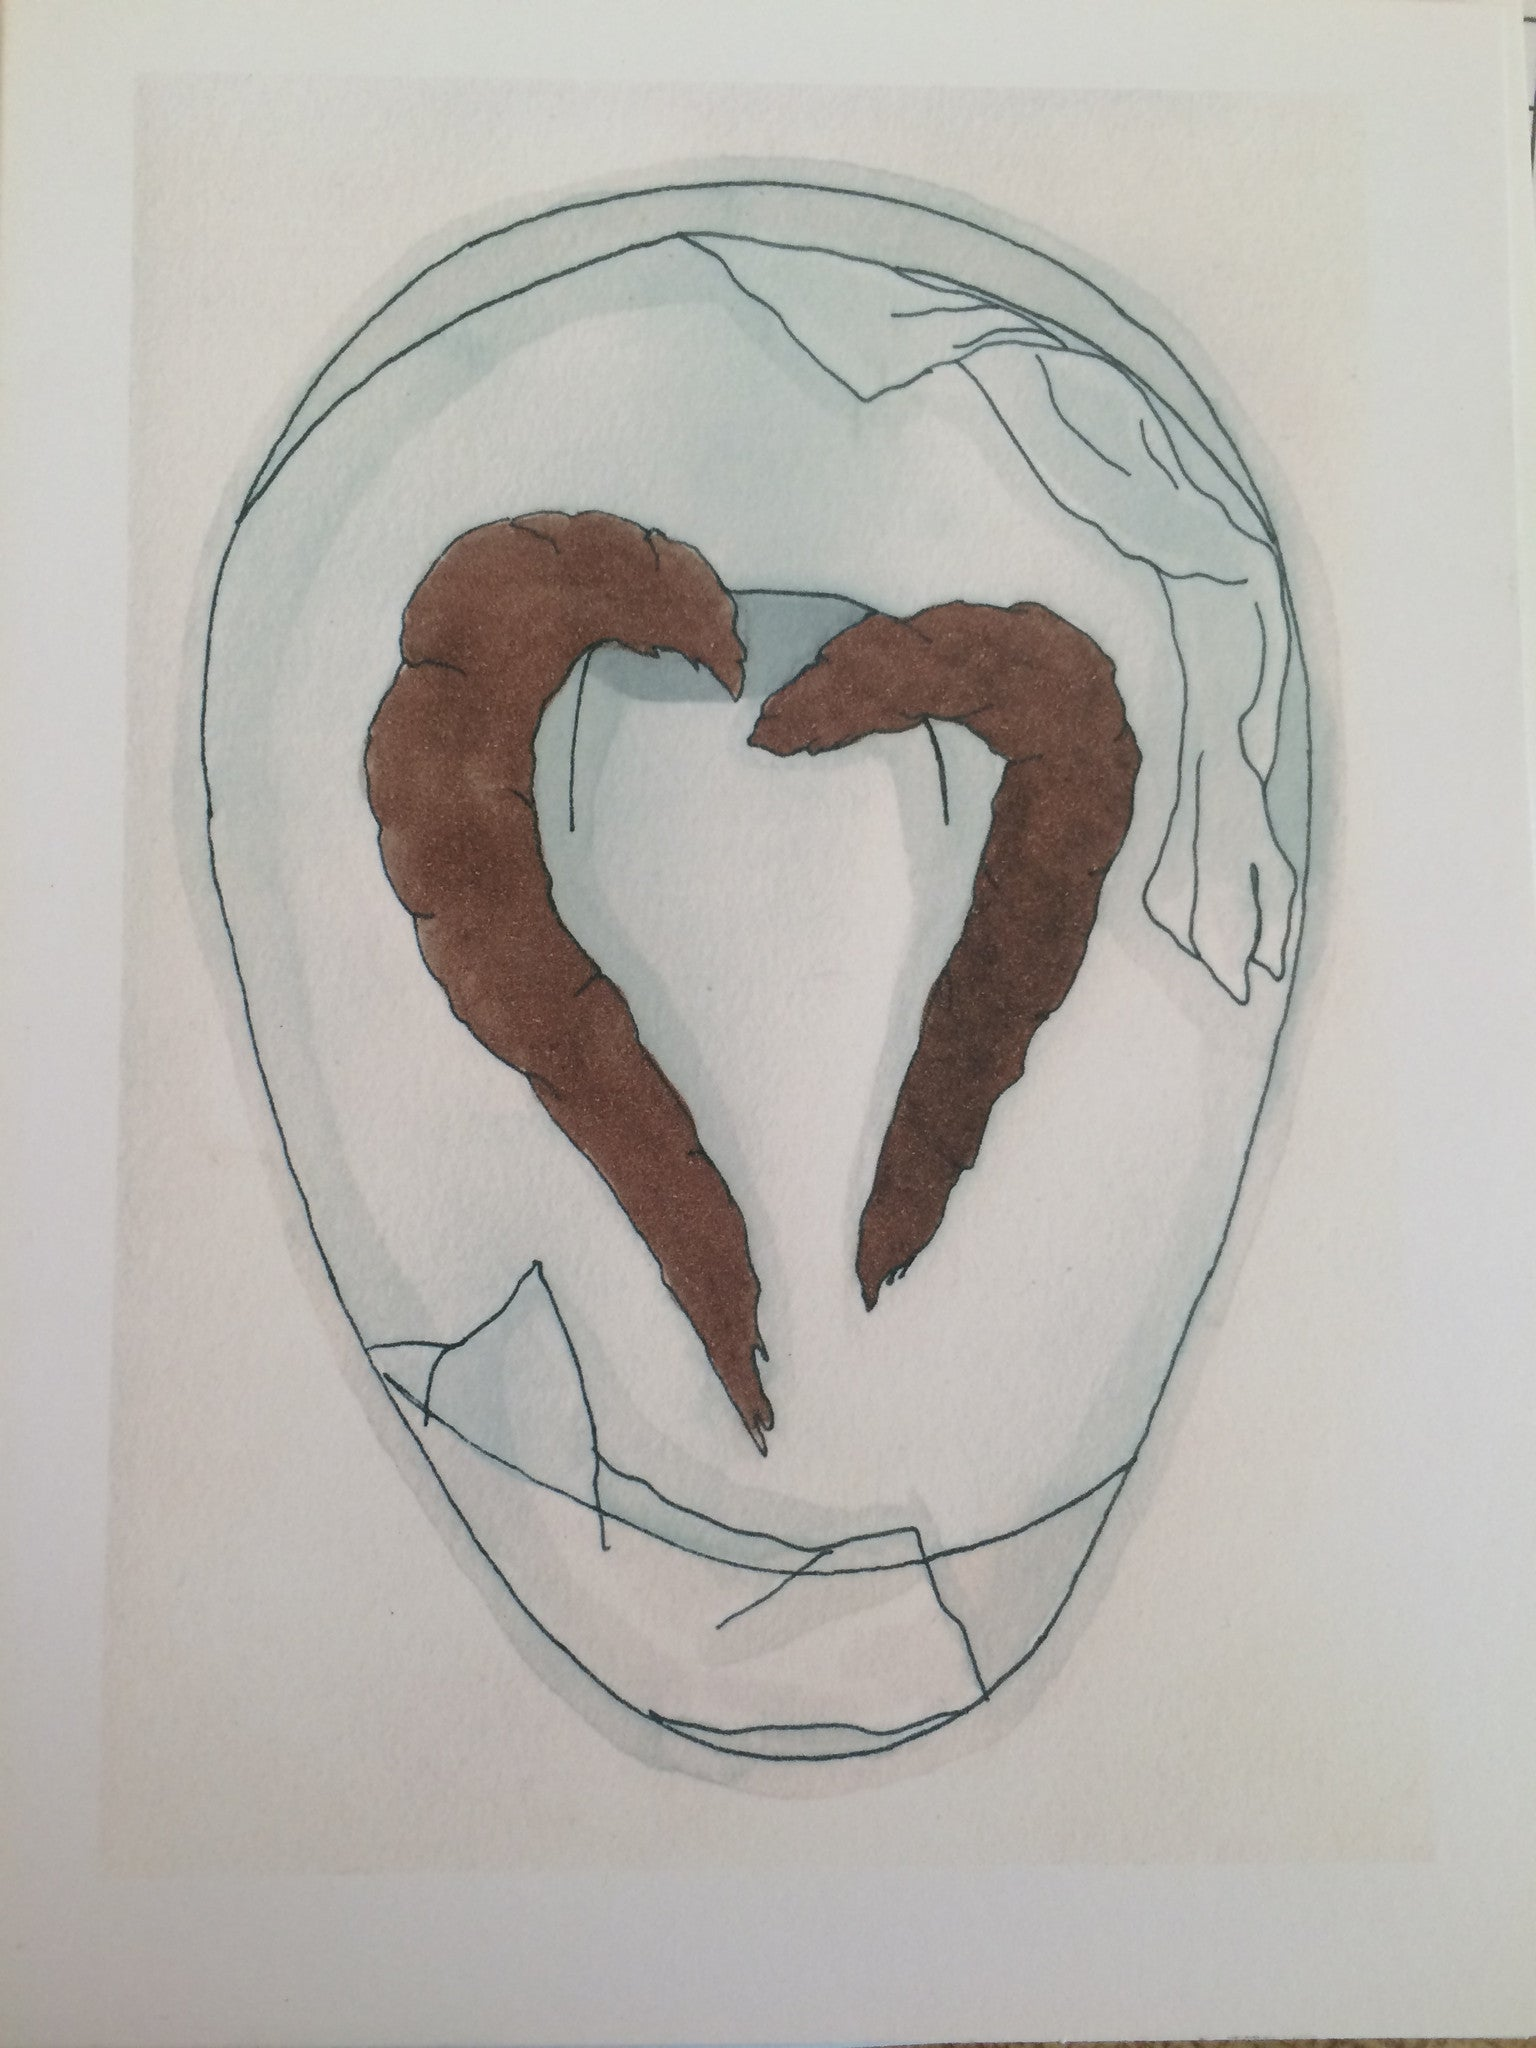 MORGAN KESSLER // POOP HEART CARD